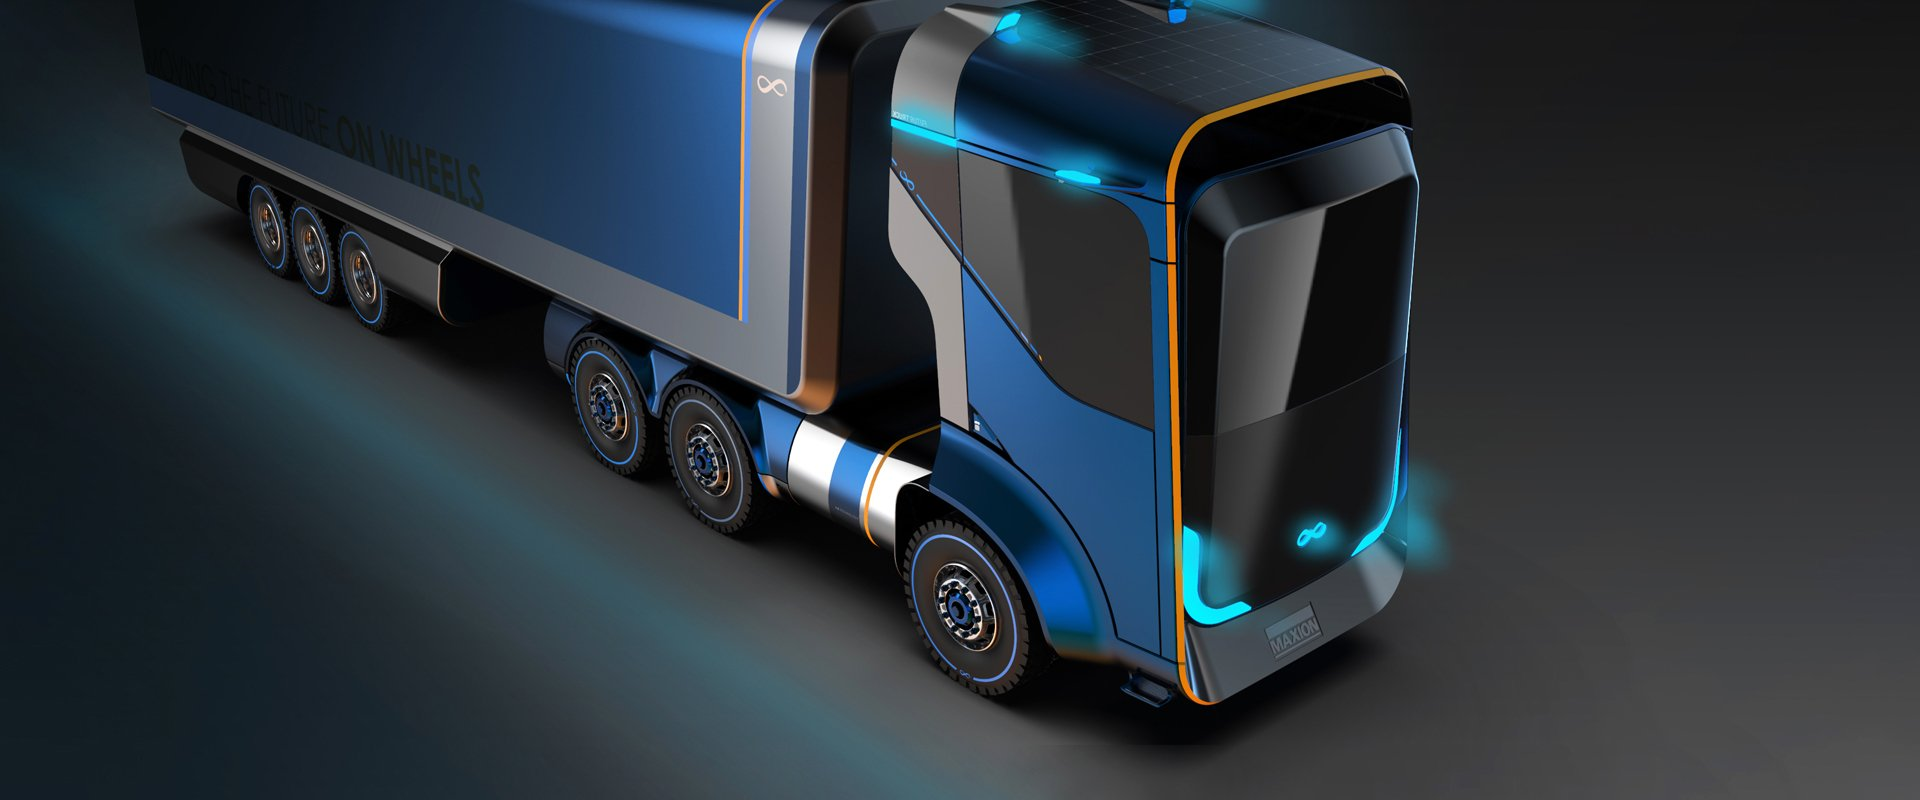 A picture of a truck that demonstrates fuel efficiency of the aerowheel by Maxion Wheels